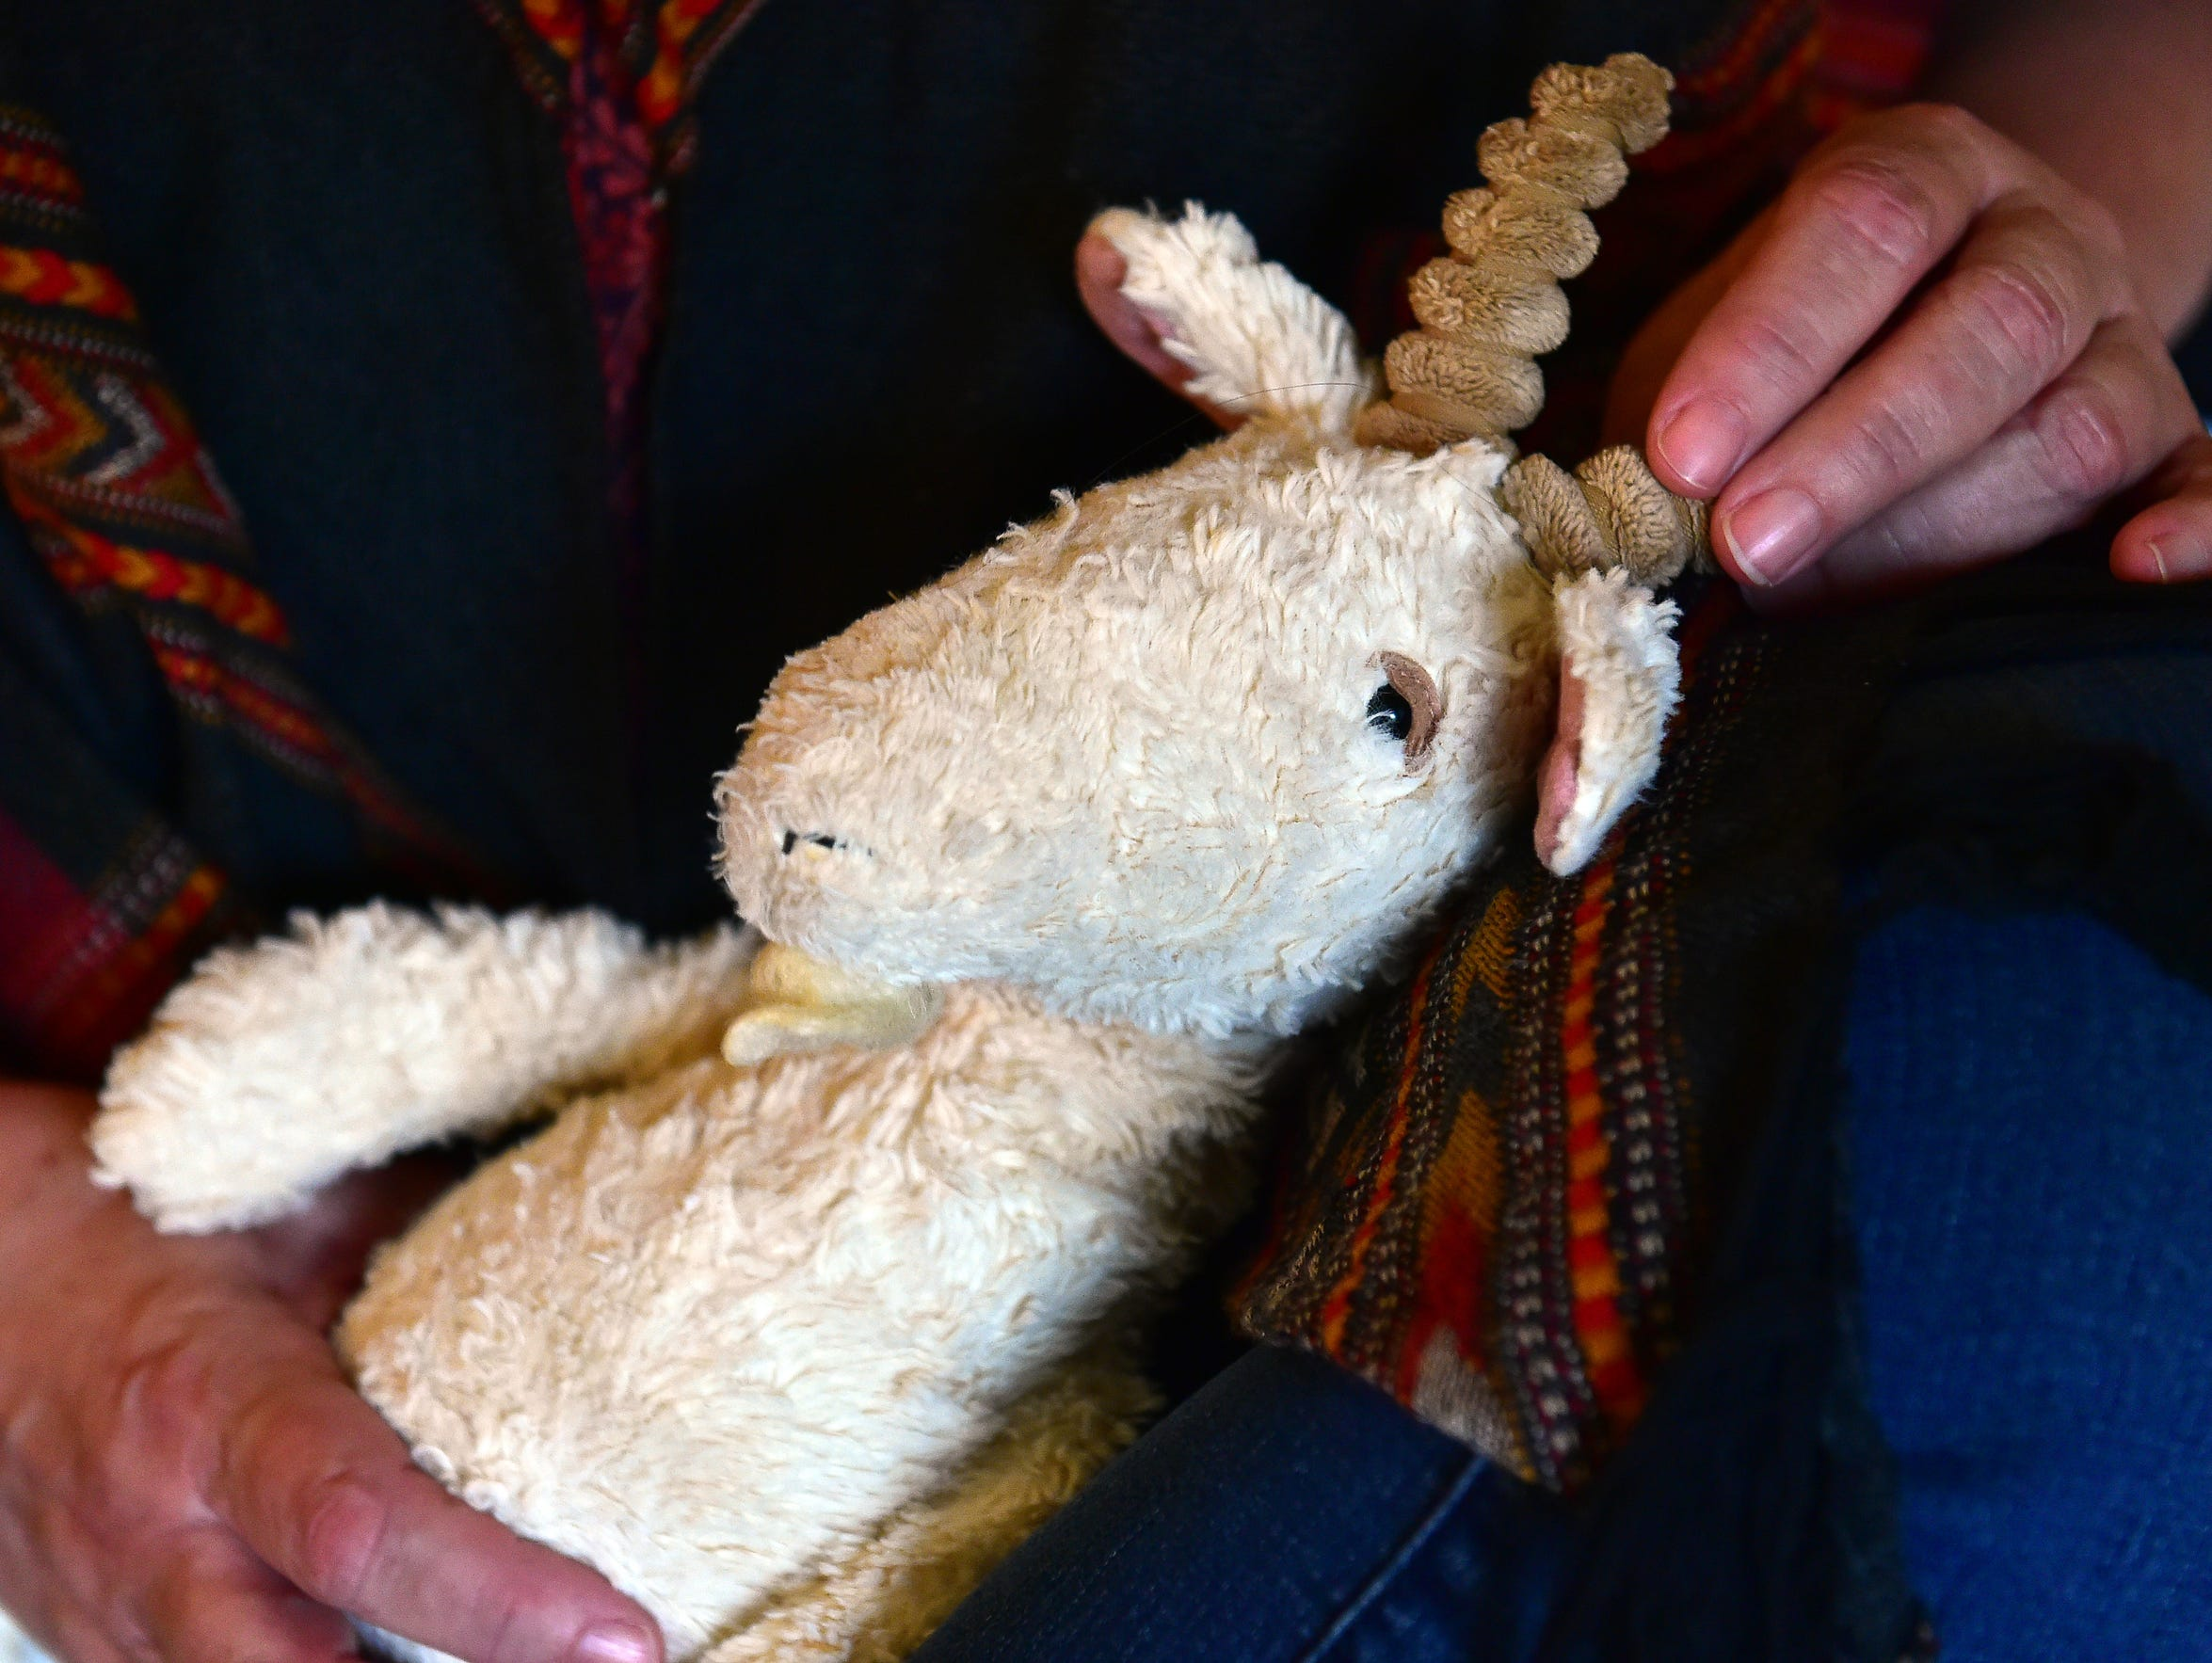 Brooke Conner's stuffed animal goat lives on her bed at home in Mississippi while she's in the psychiatric ward at Ochsner Medical Center in New Orleans.